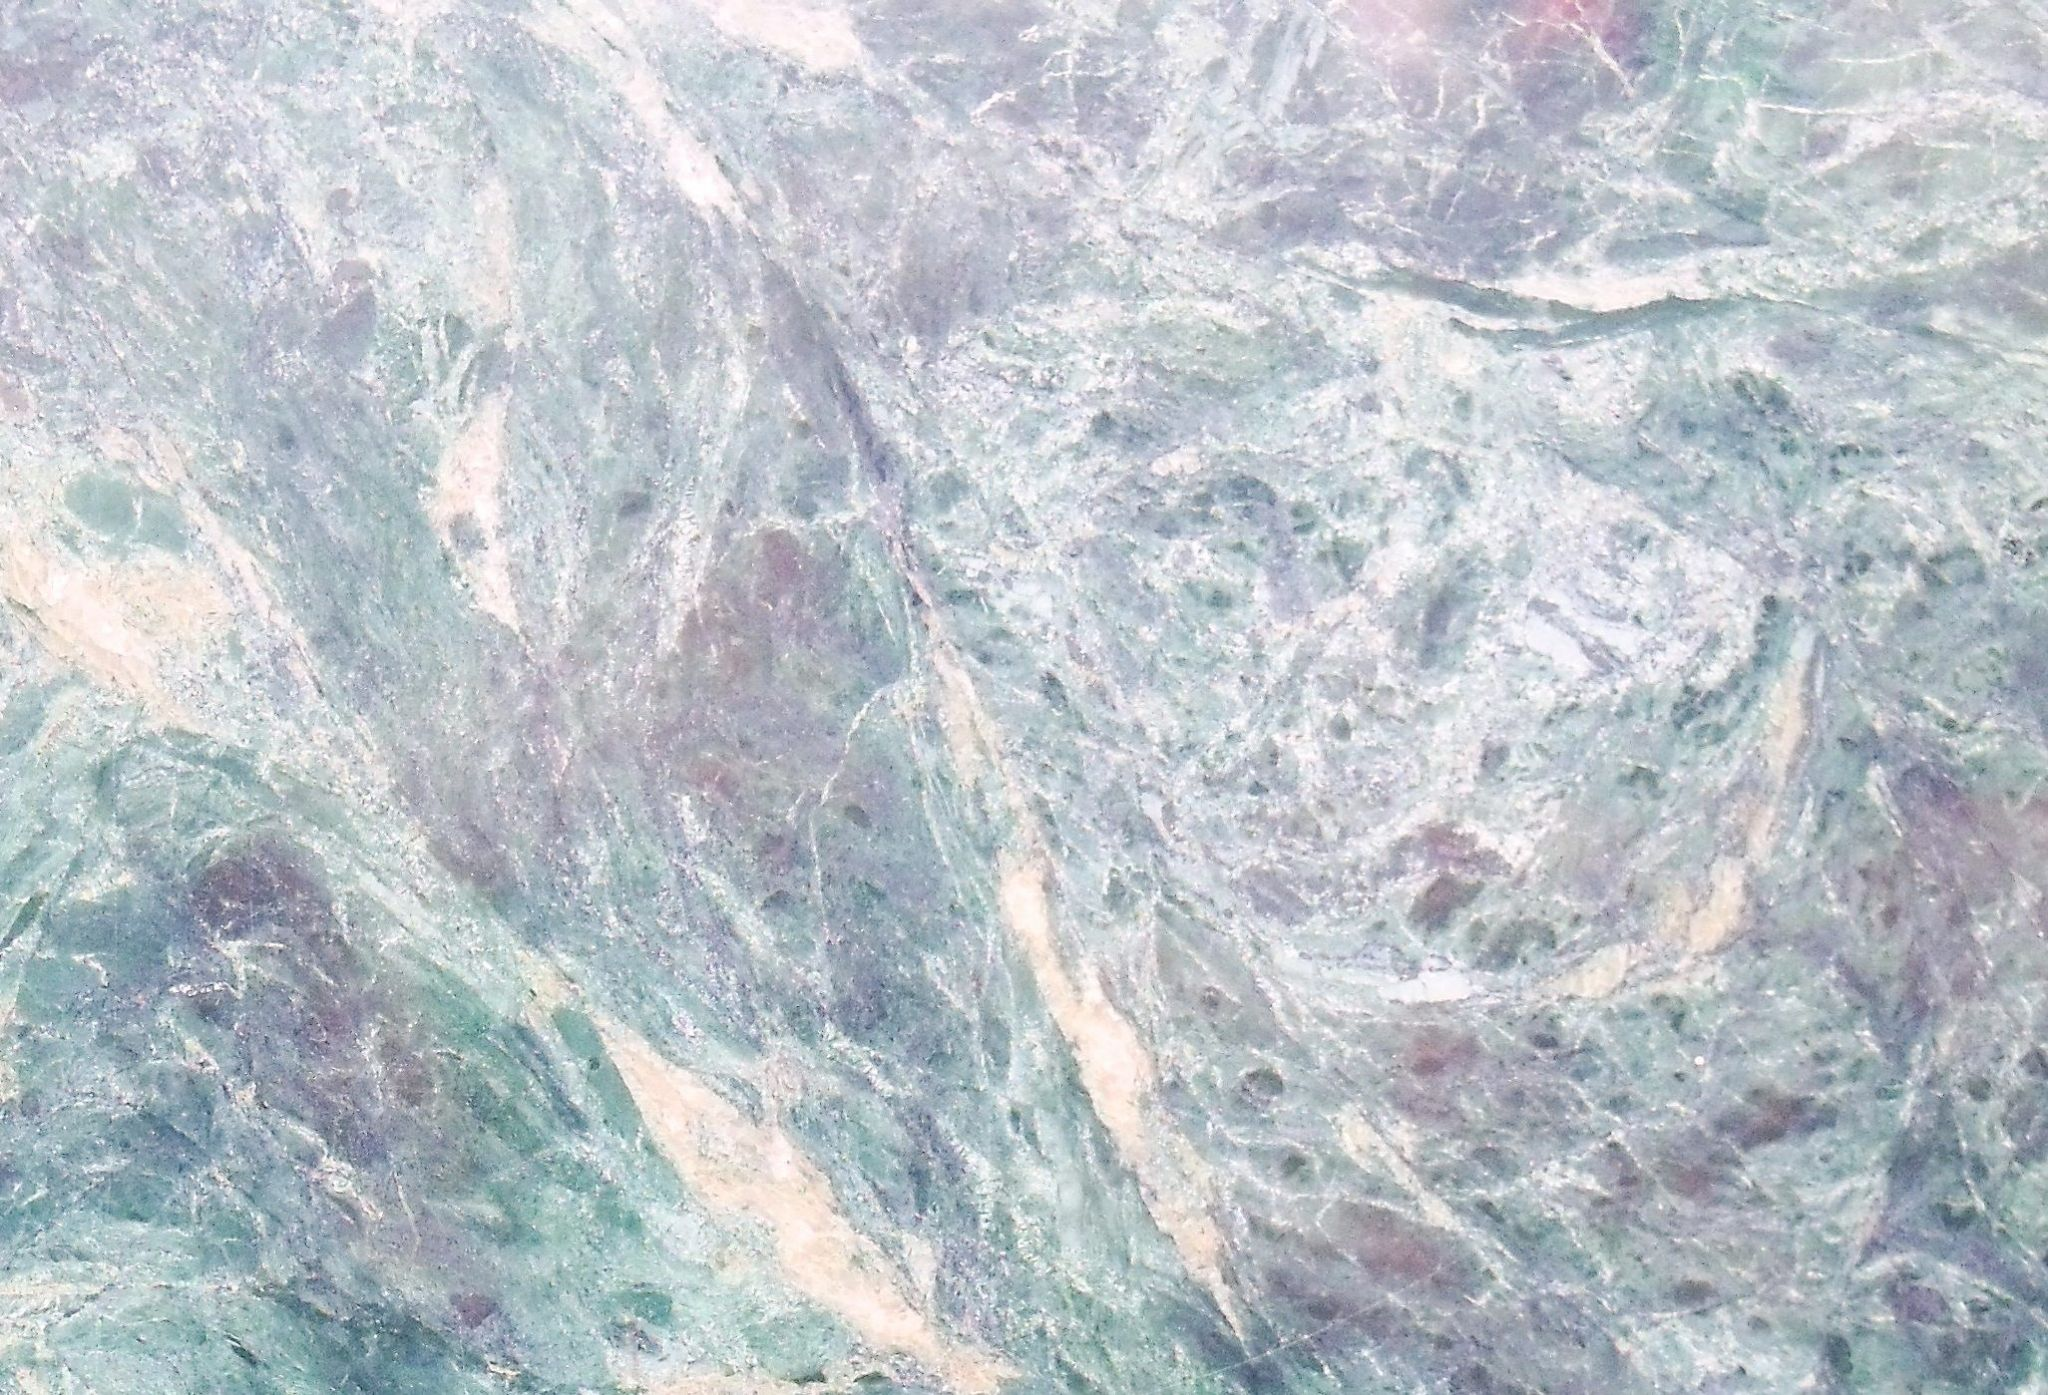 Great Wallpaper Marble Turquoise - f2cf69f37a2ae1ed4dfb0a596cafff5e  Pic_82683.jpg